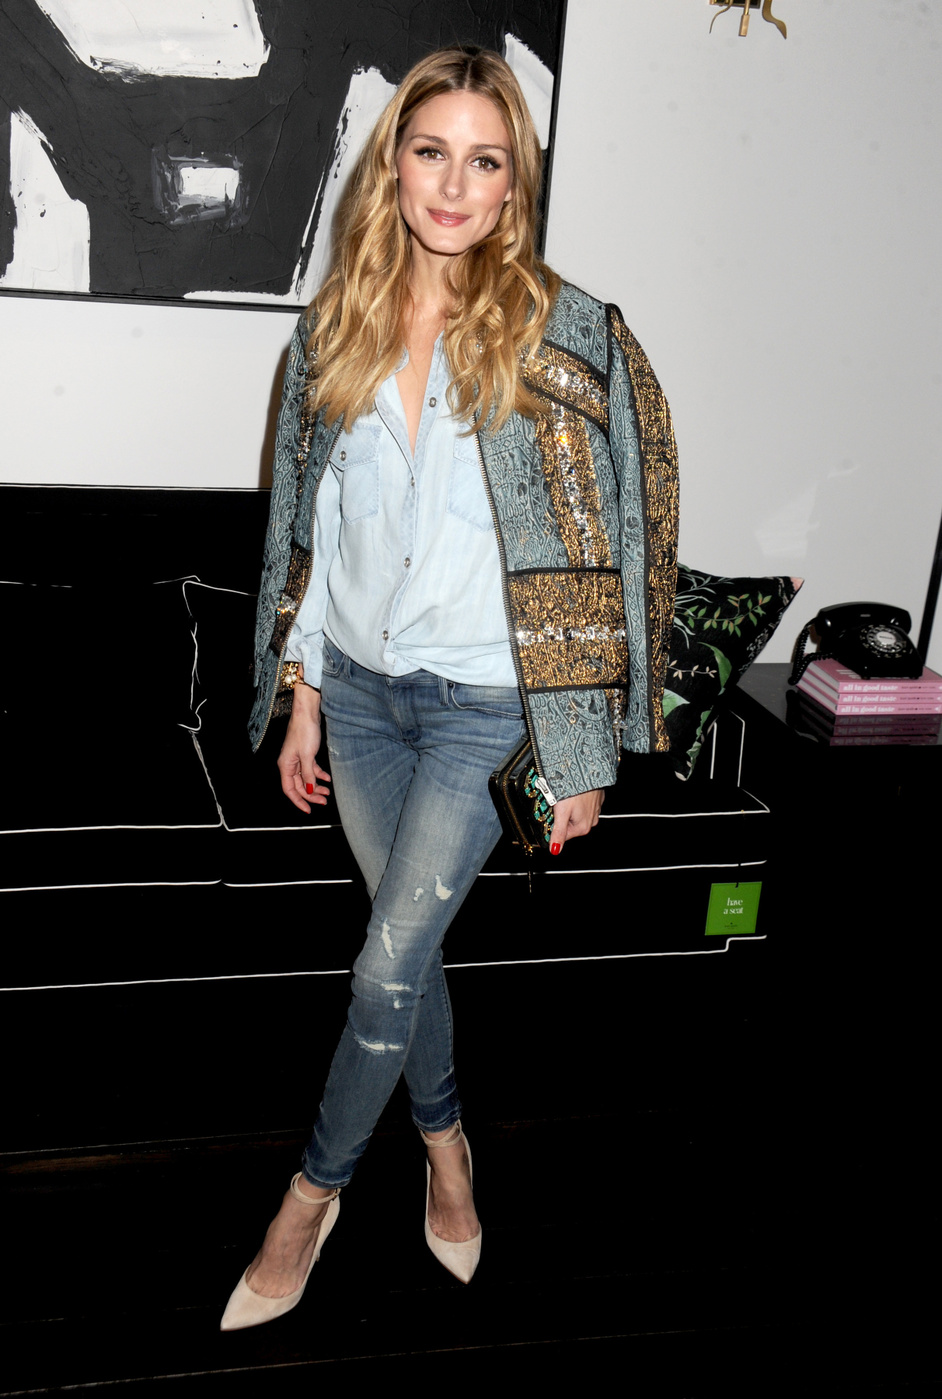 f4253ccc22 oliviapalermodenimandchambraylook. Looking for another way to style your favorite  chambray shirt